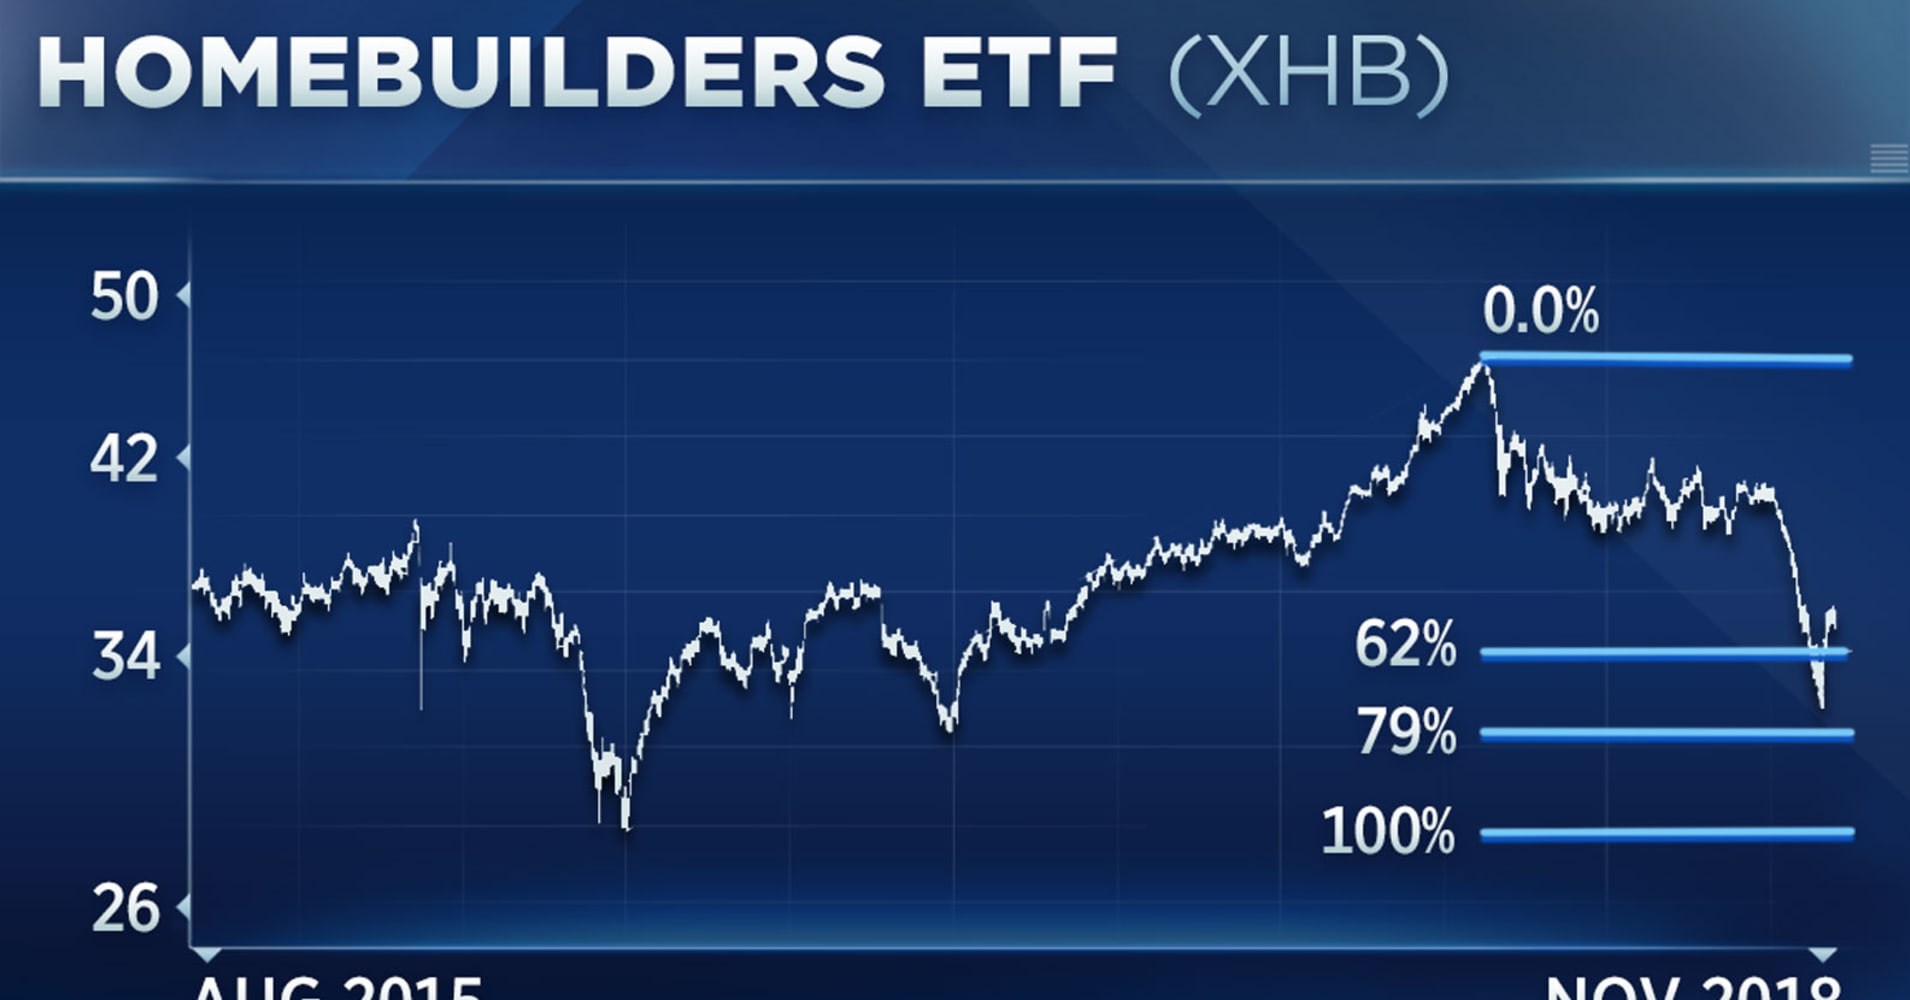 Homebuilder stocks are getting crushed, but one analyst says the chart looks so bad — it's good